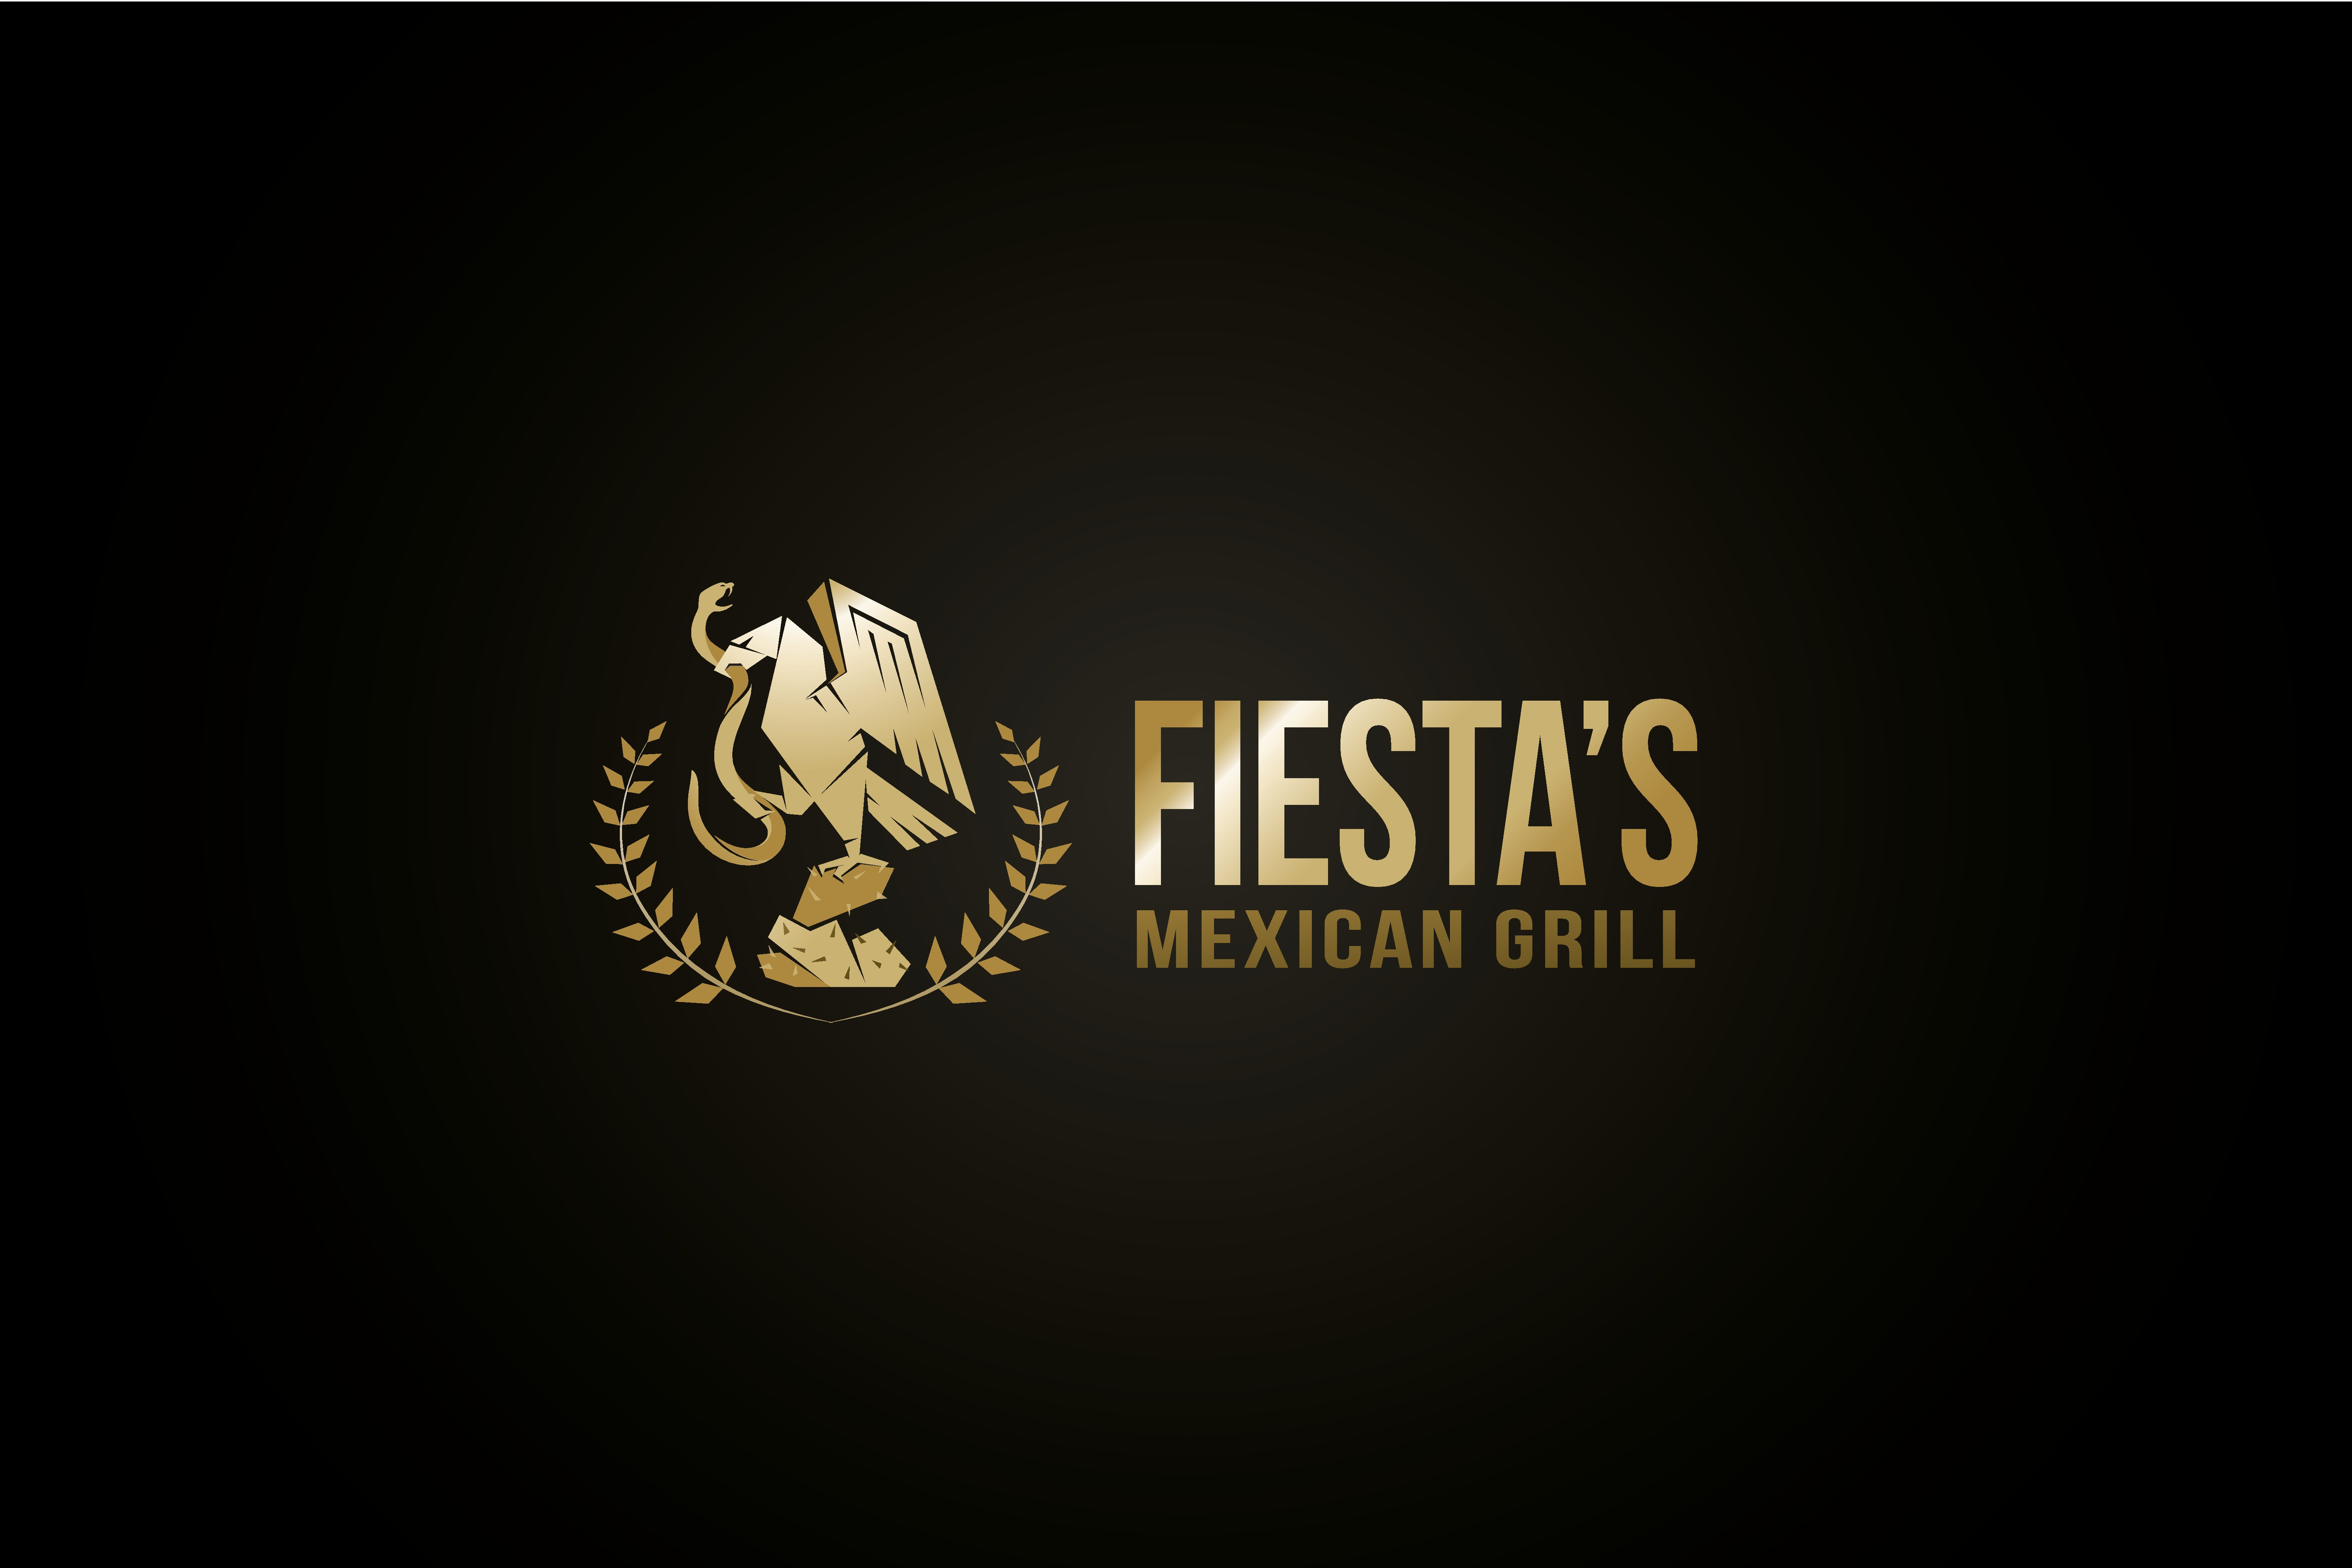 Be the FIRST to create Fiesta's Mexican Grill's FIRST website